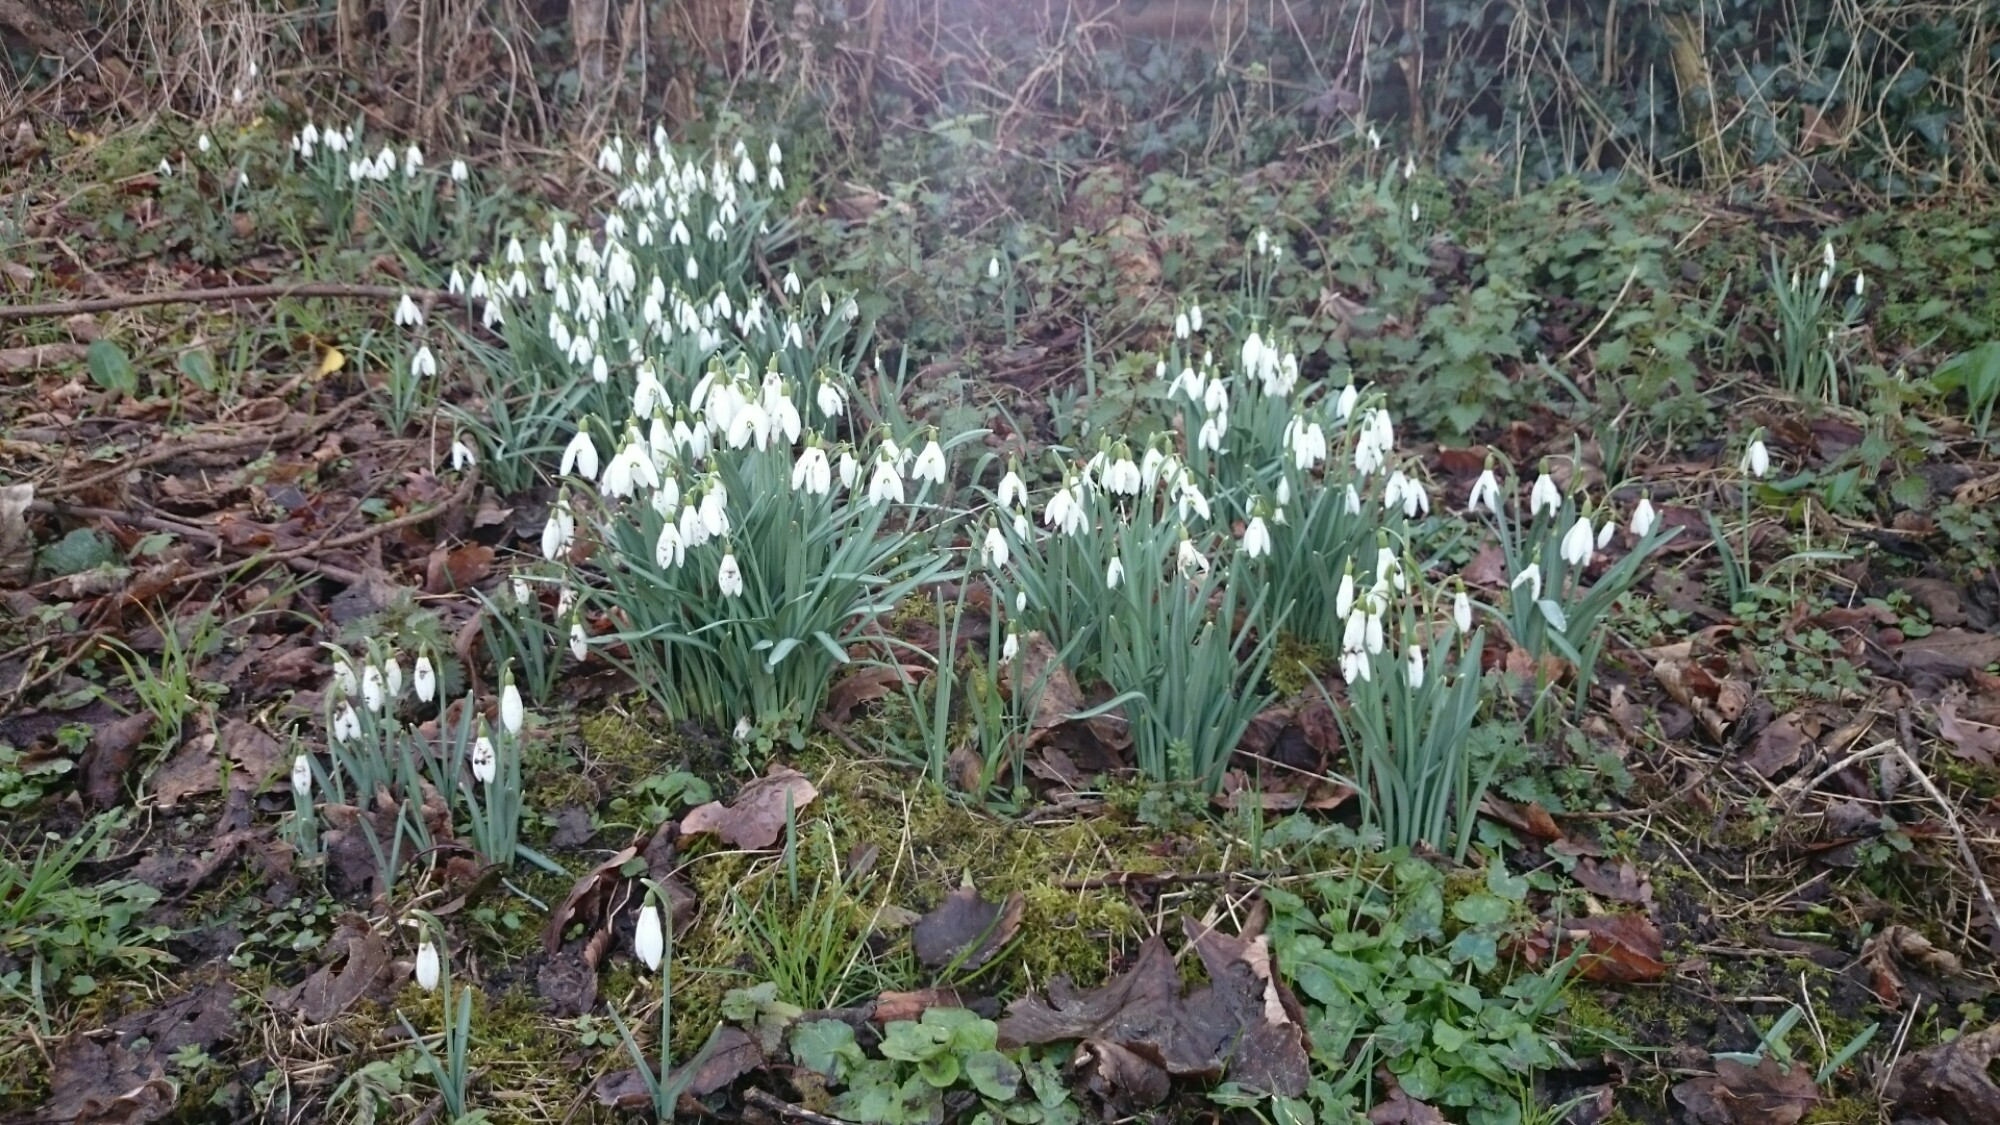 Snowdrops blooming in rural France